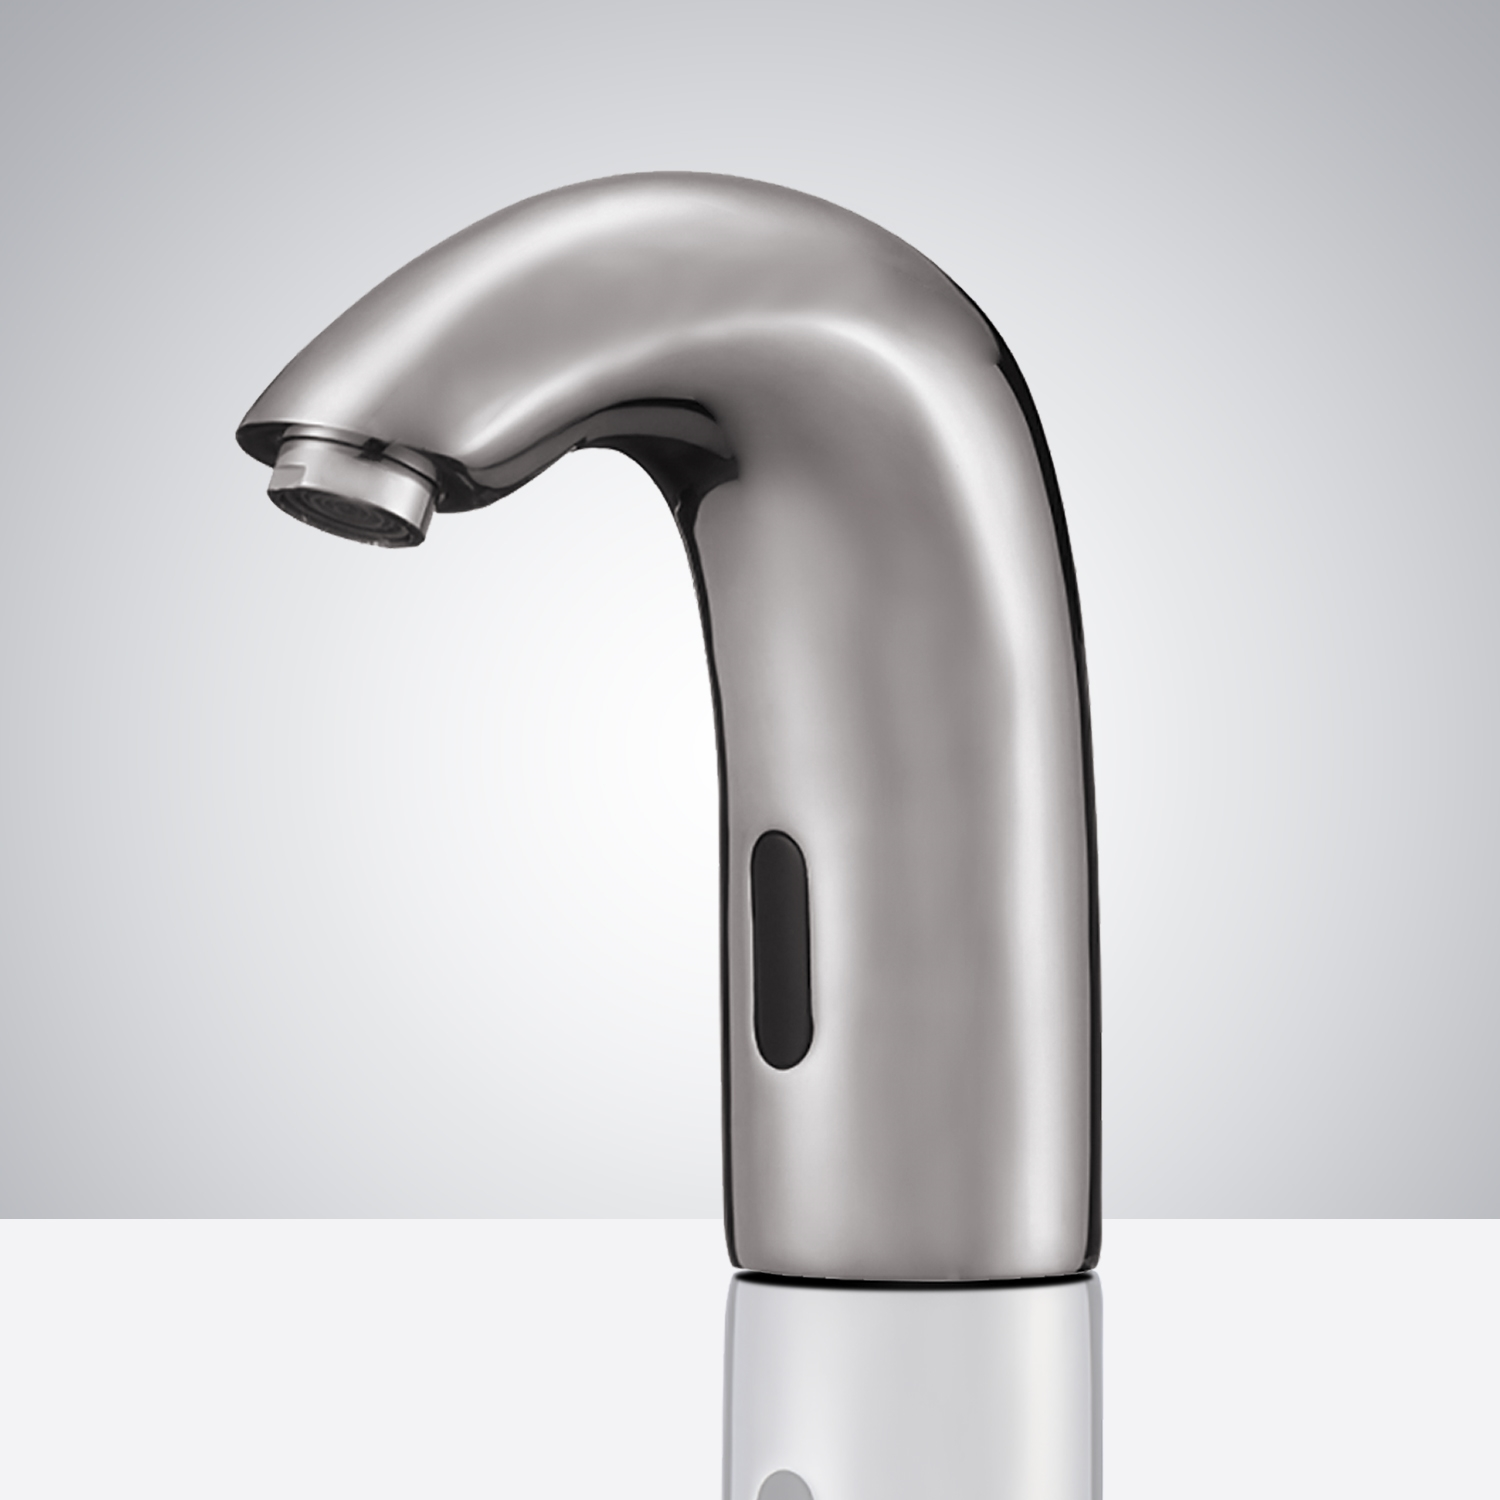 Fontana Brushed Nickel Commercial Automatic Hands Free Sensor Faucet